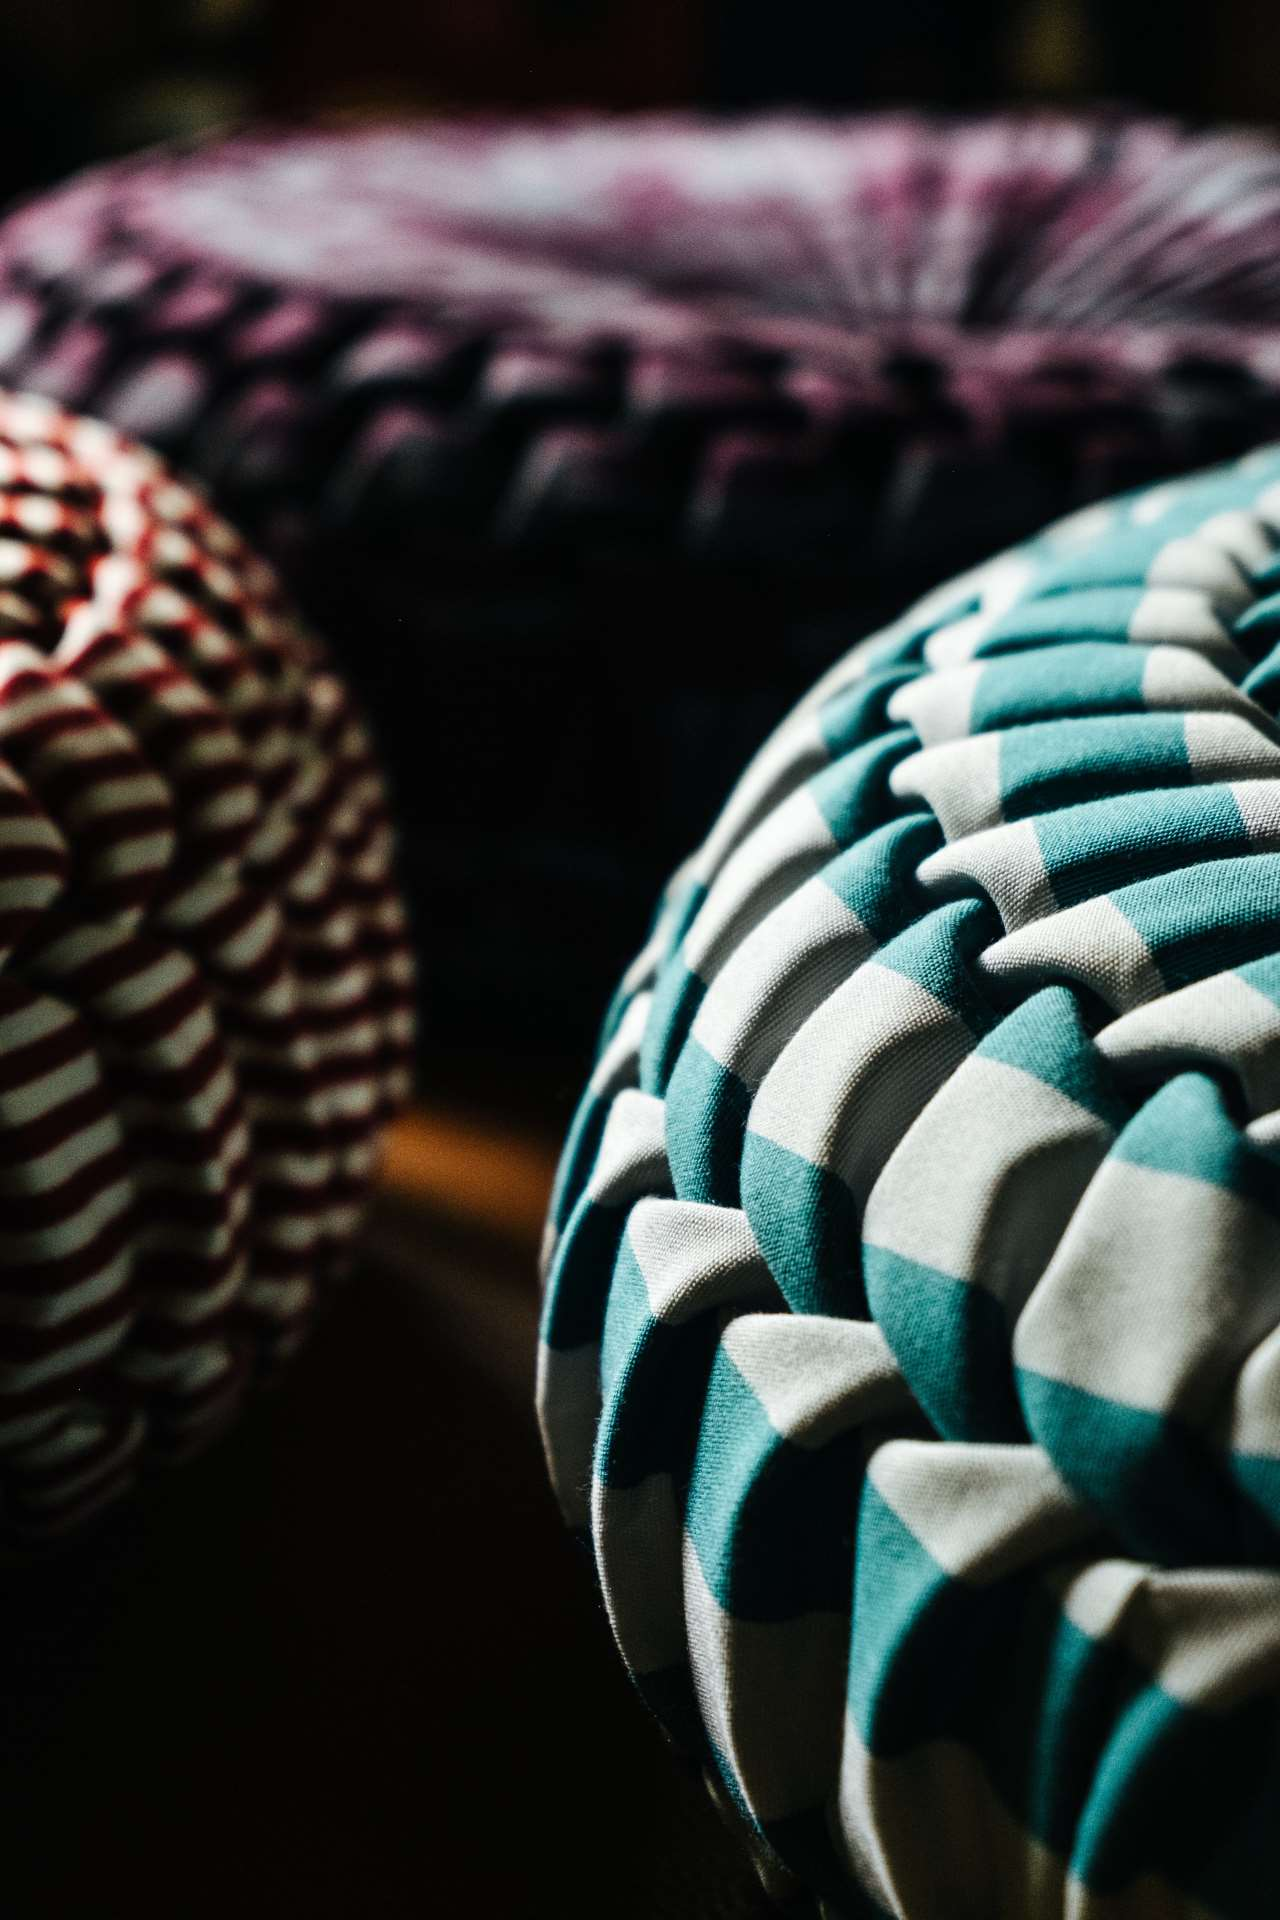 JPDEMEYER&CO's latest cushion & fabric collections presented at Palazzo Clerici during Milan Design Week 2019. © JPDEMEYER&CO.